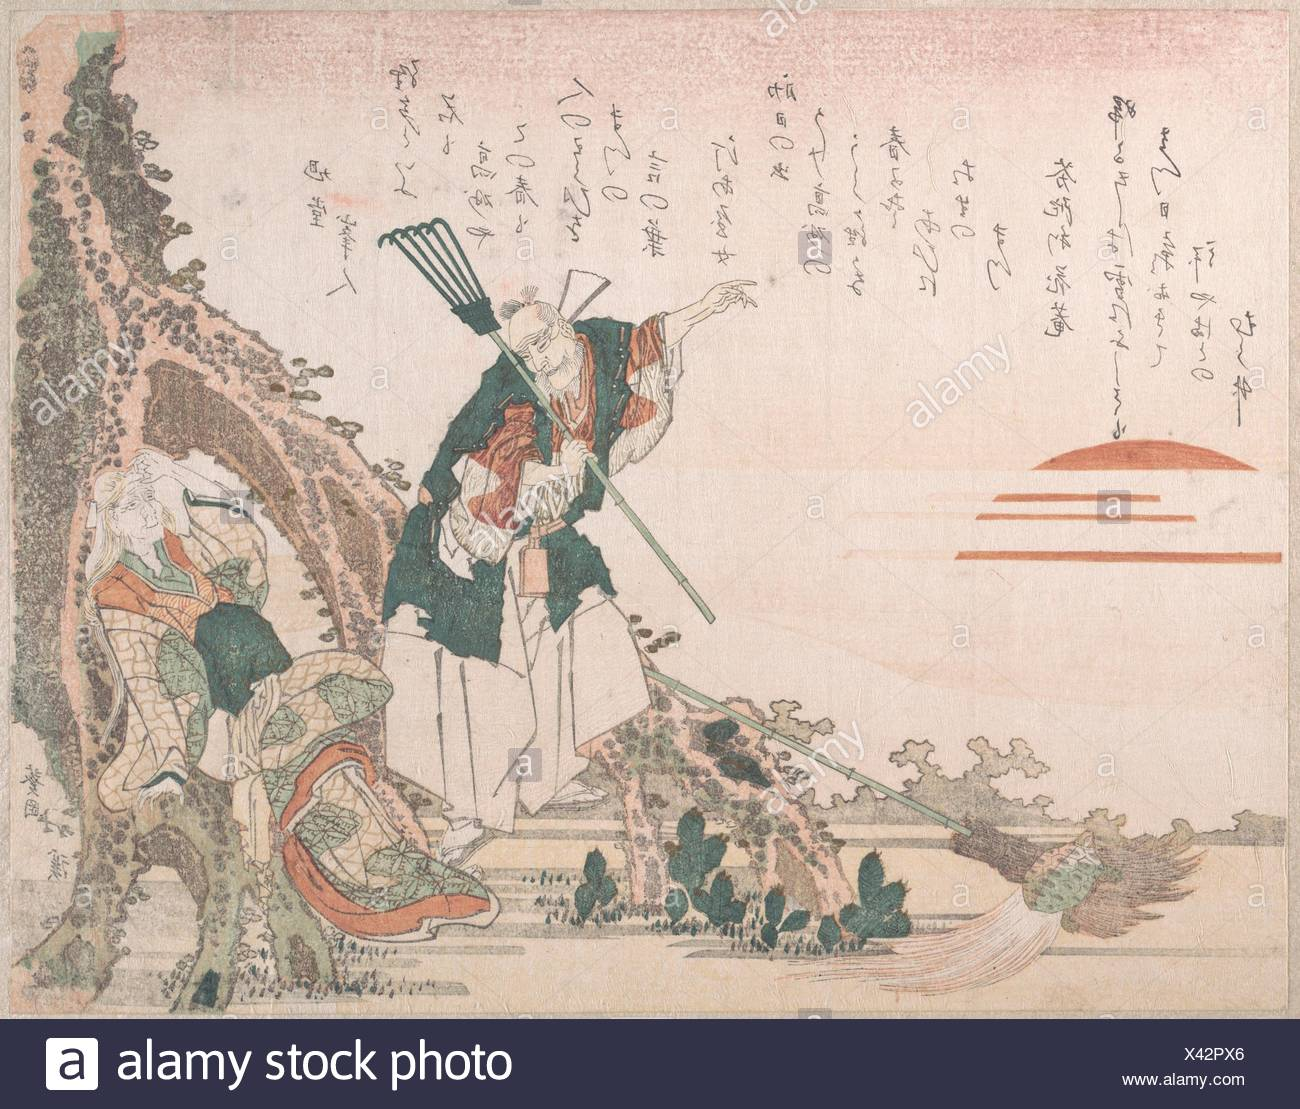 Jo and Uba of Takasago Looking at the Rising Sun; Symbolic Representation of Longevity and Conjugal Harmony. Artist: Totoya Hokkei (Japanese, - Stock Image